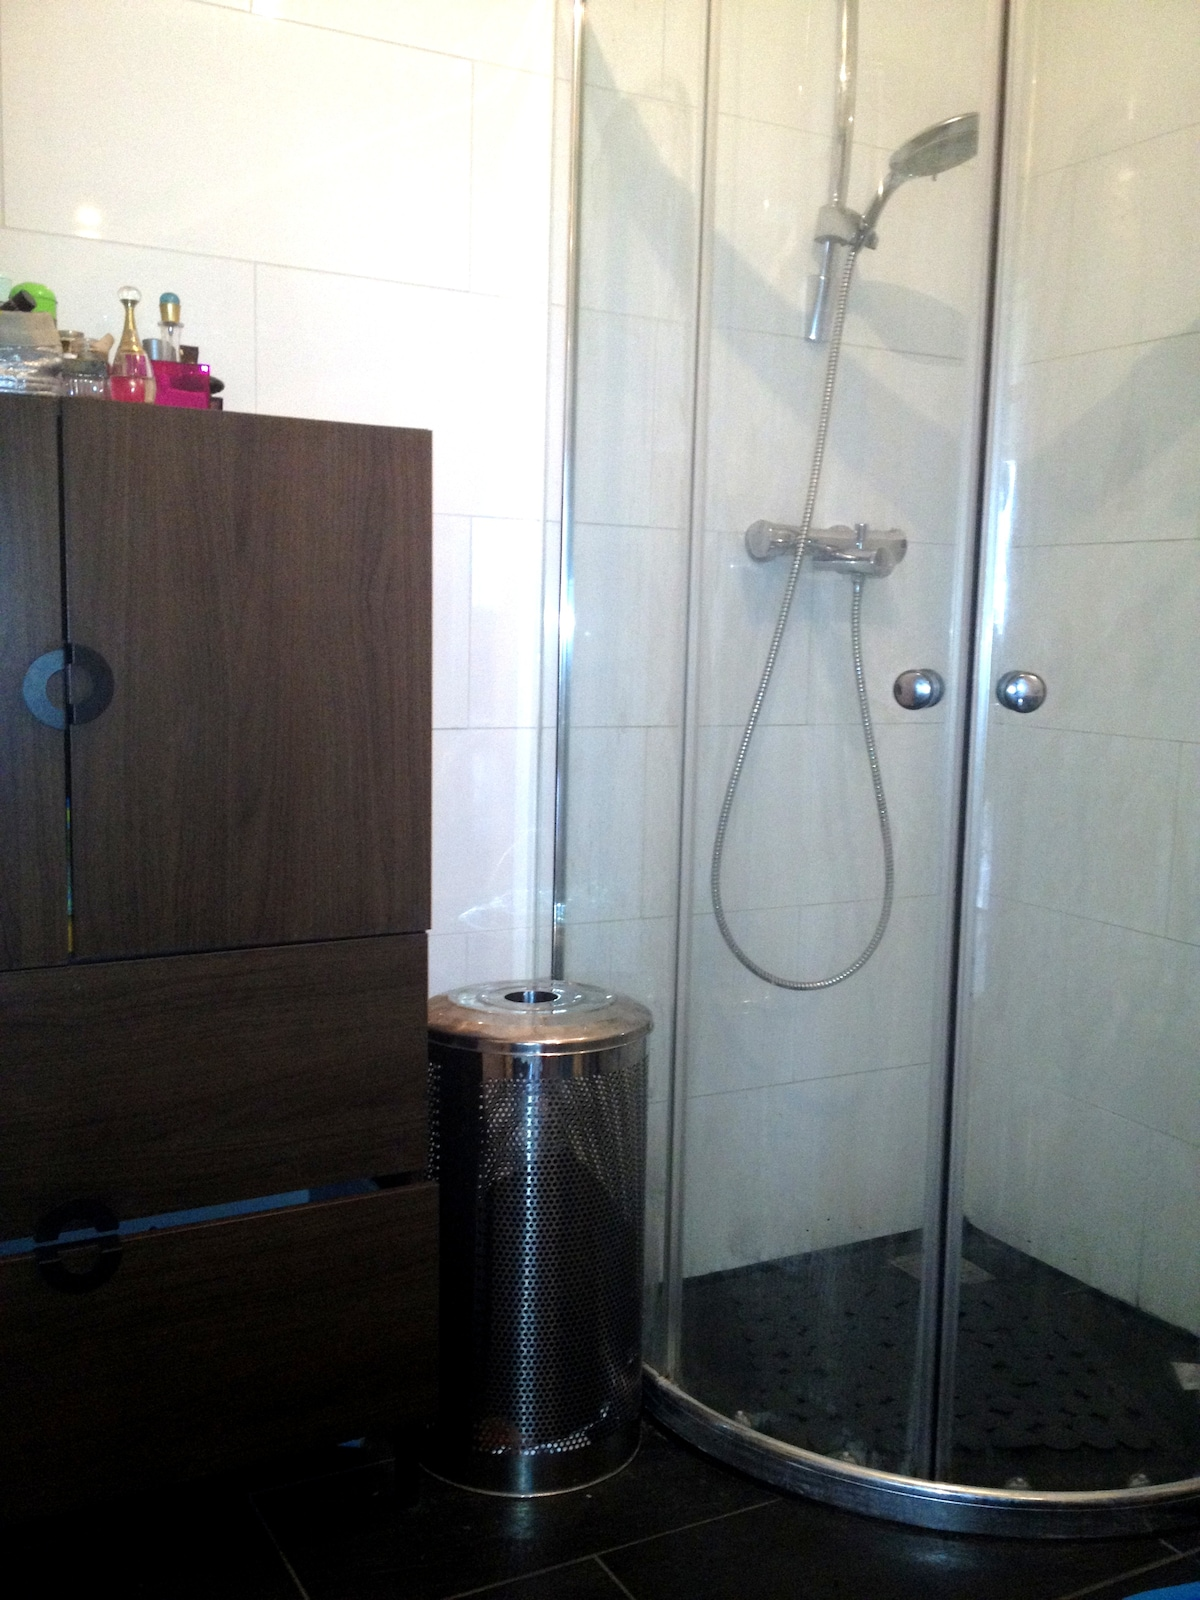 The Bathroom - shower